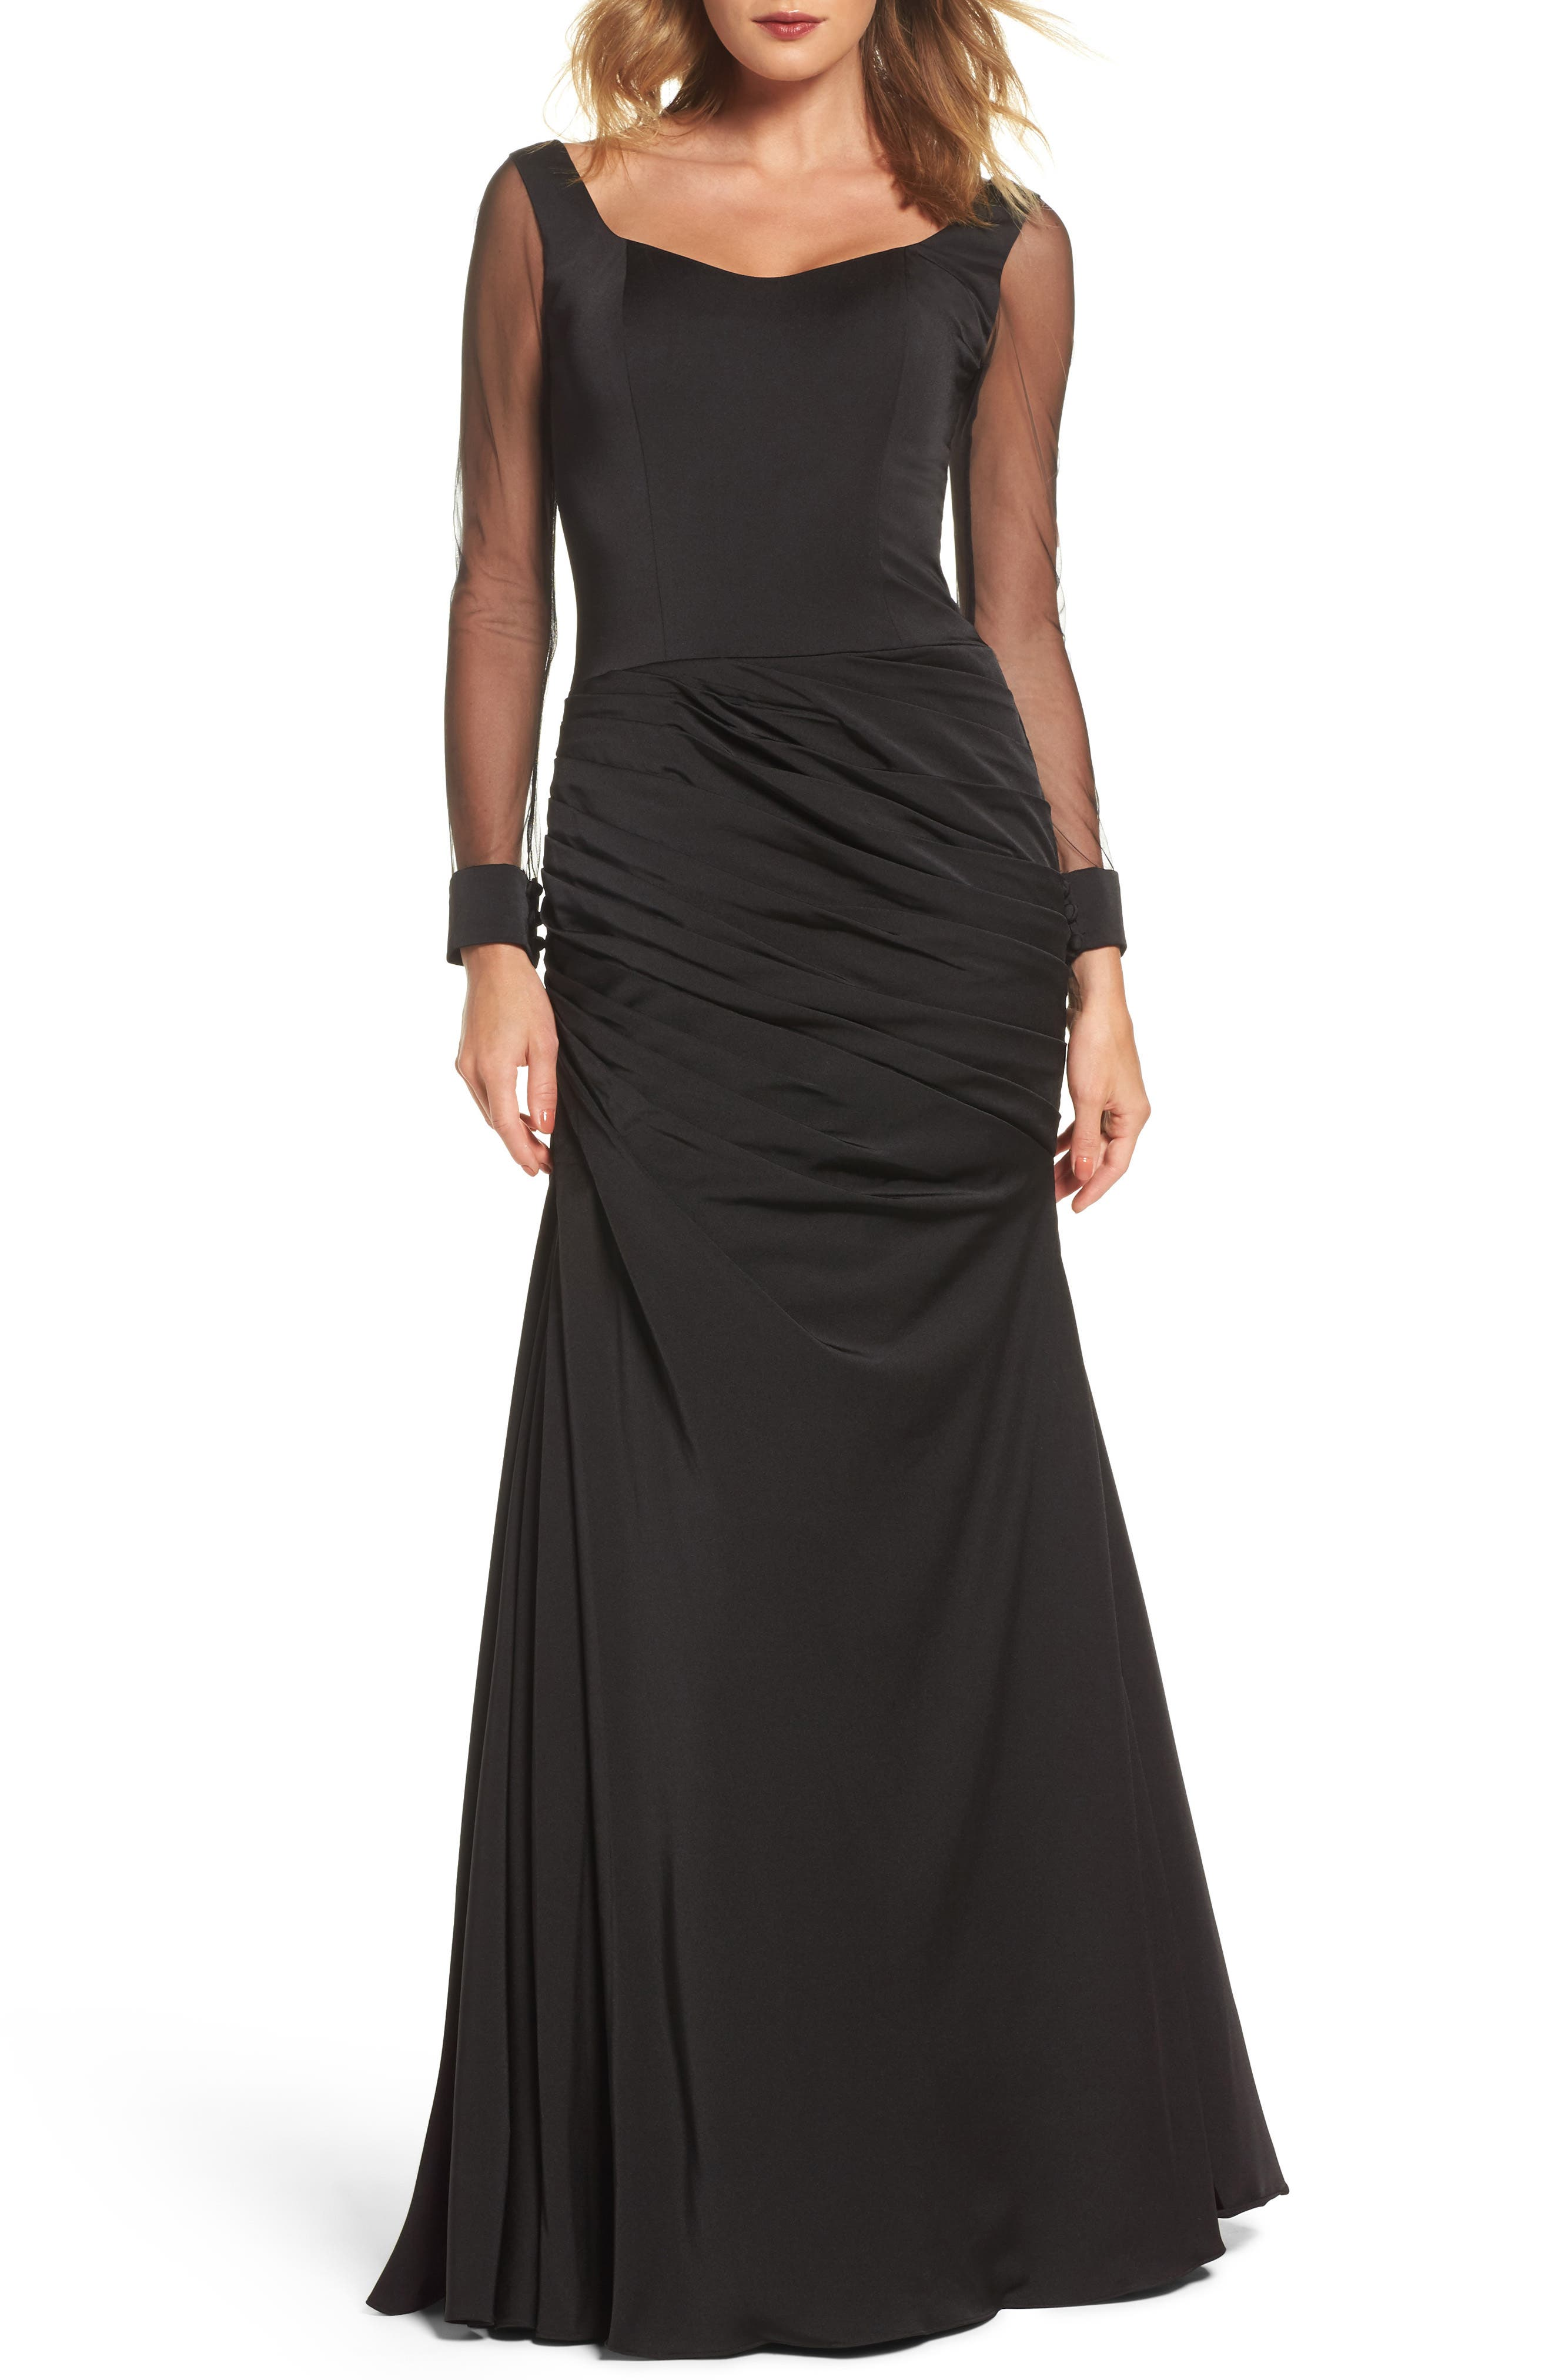 Sheer Sleeve Gown,                             Main thumbnail 1, color,                             Black